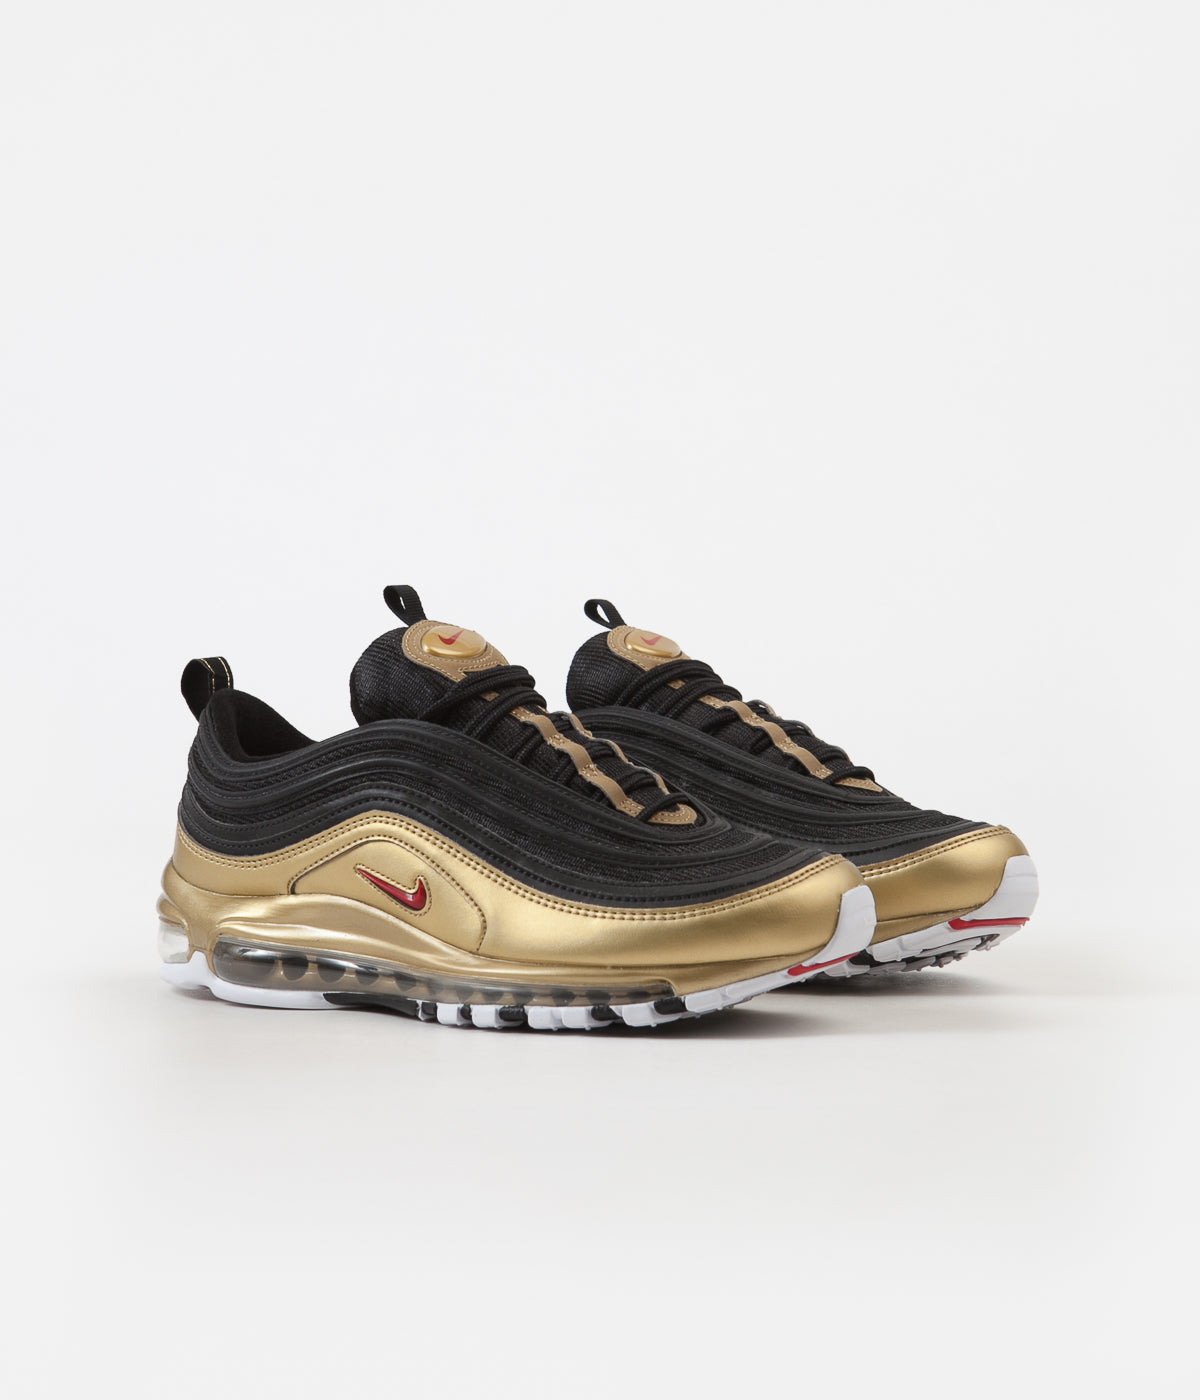 f9657f85e78a59 ... Nike Air Max 97 QS Shoes - Black / Varsity Red - Metallic Gold - White  ...